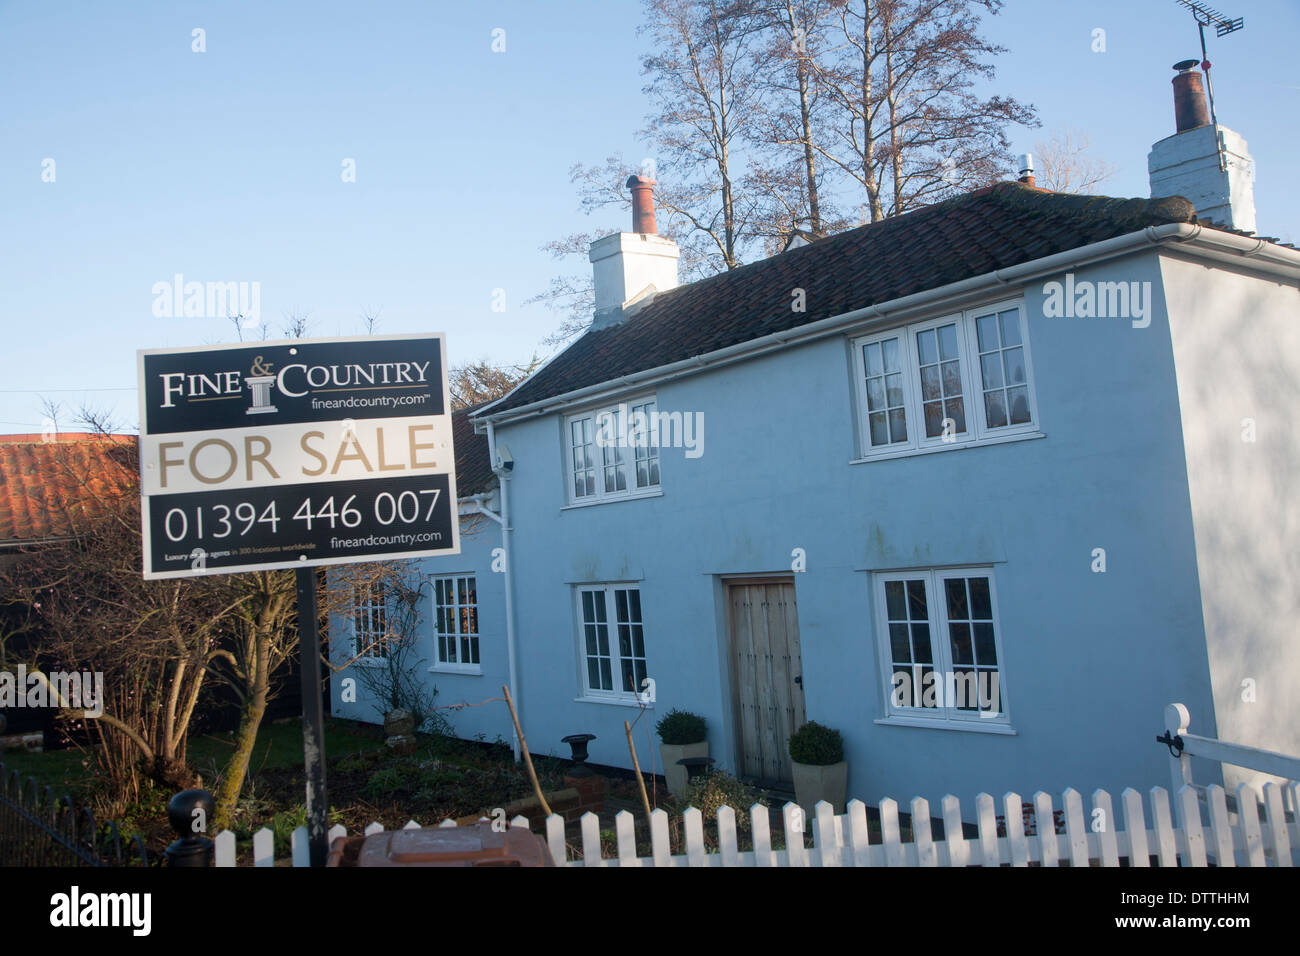 Fine and Country estate agent for sale sign outside detached rural house, Suffolk, England - Stock Image